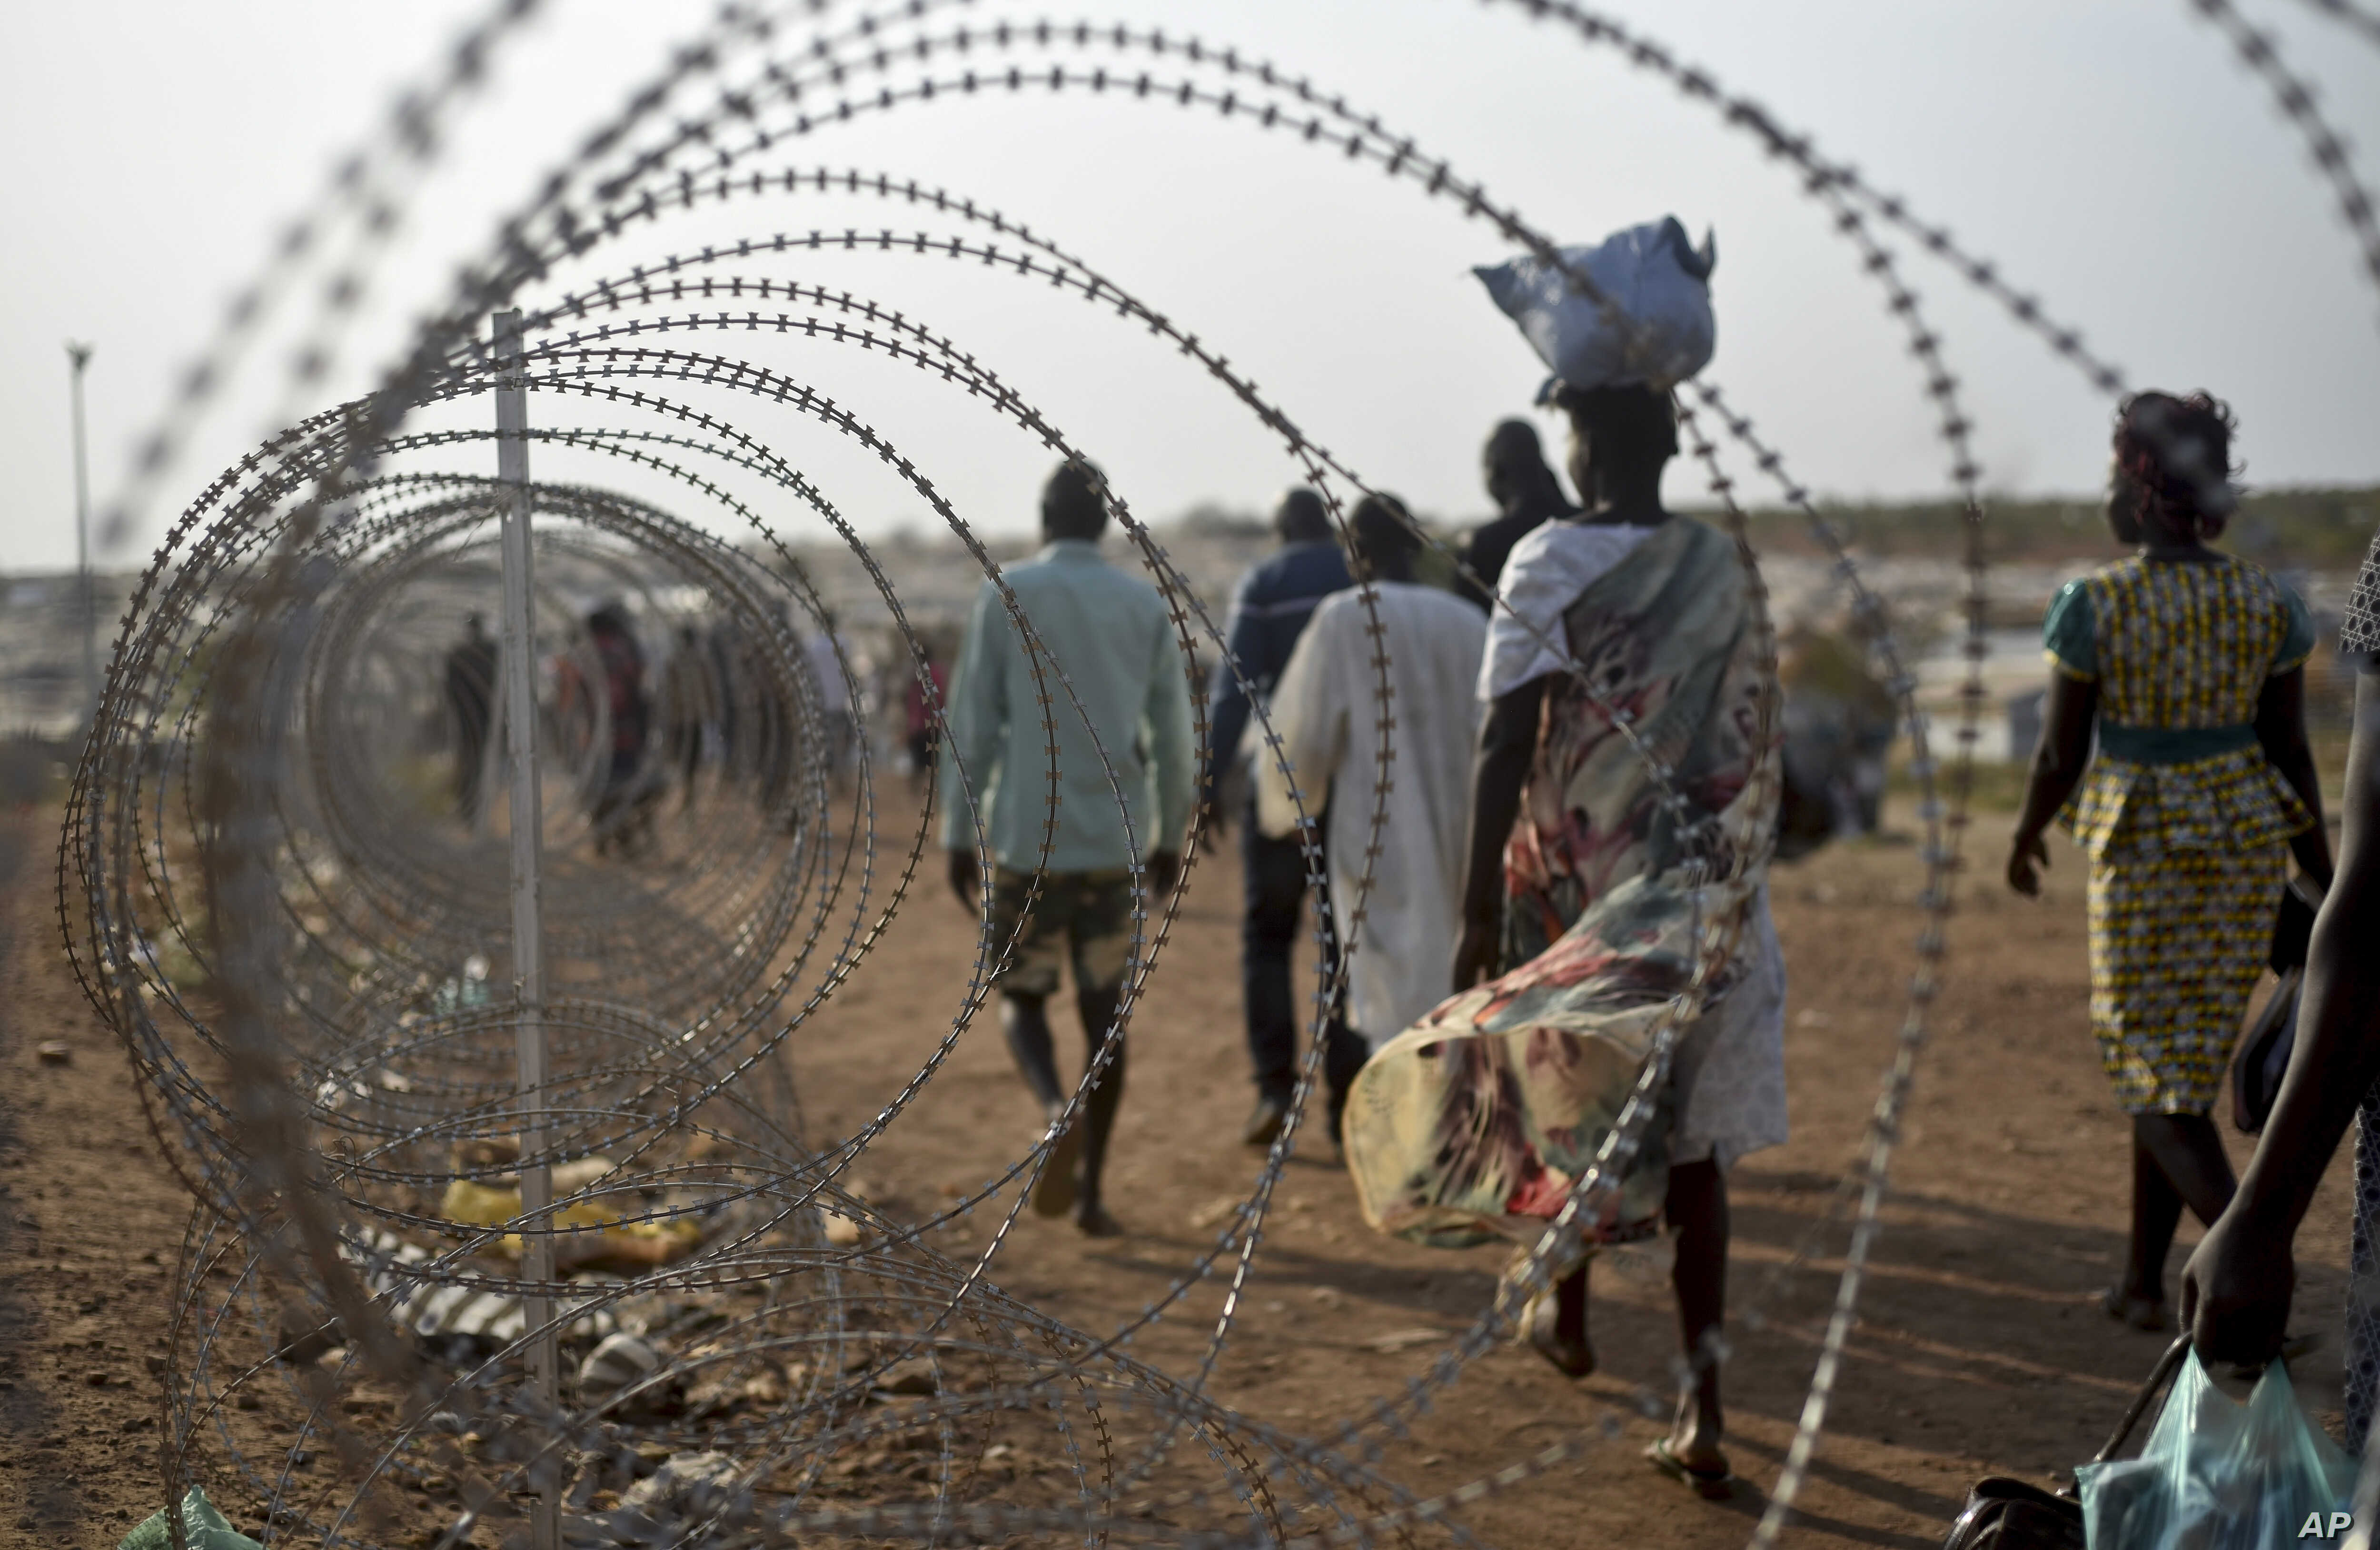 A file photo taken Jan. 19, 2016 shows displaced people walking next to a razor wire fence at the United Nations base in the capital Juba, South Sudan.